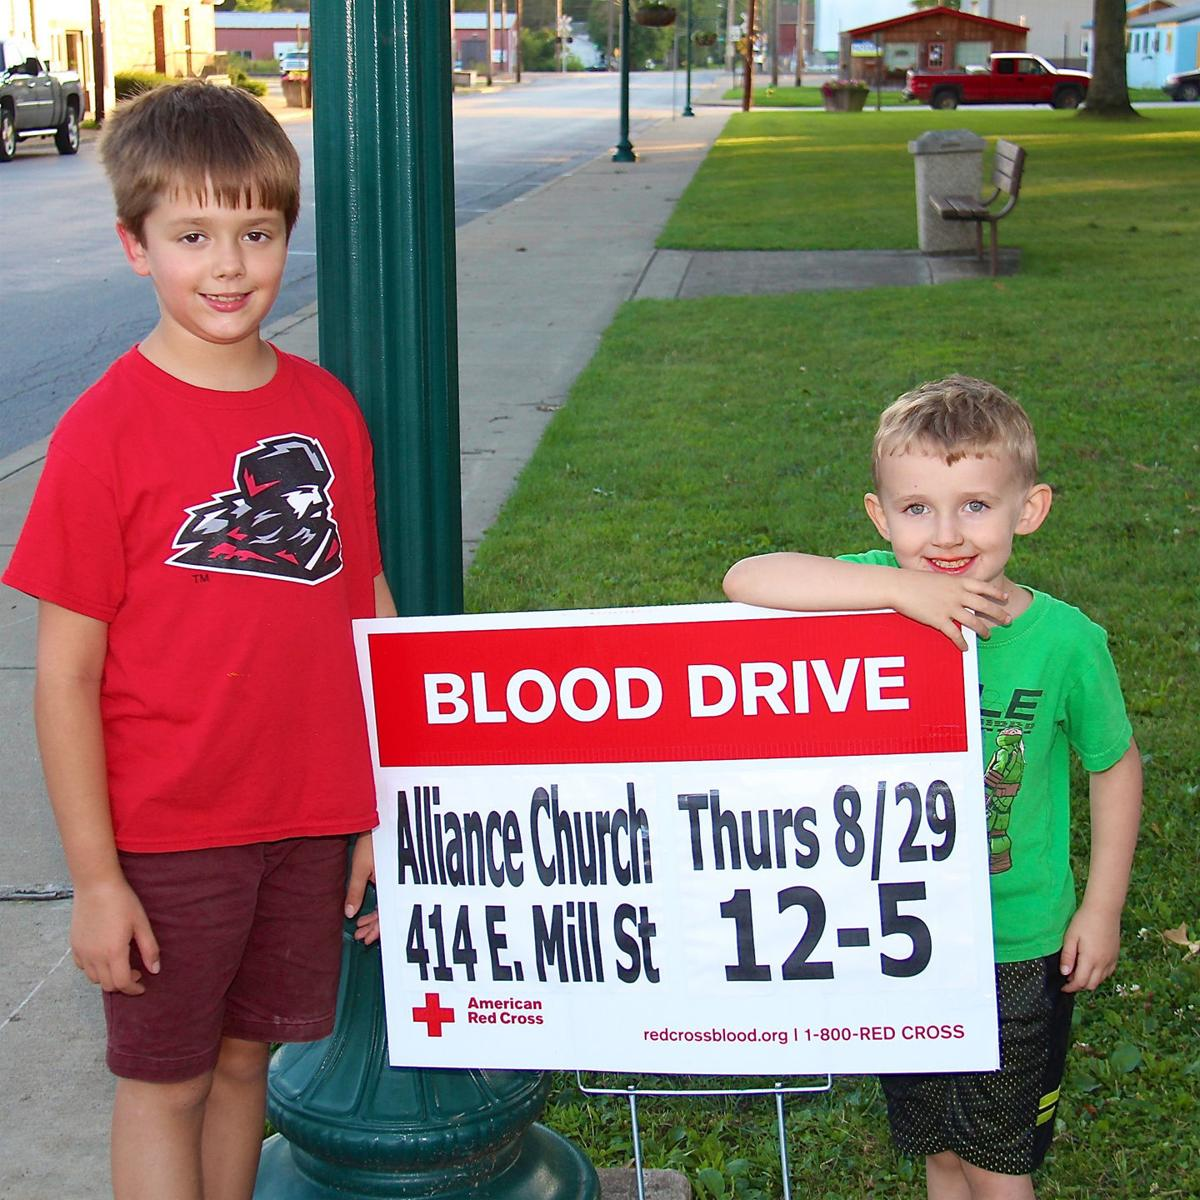 Youth remind public of blood drive